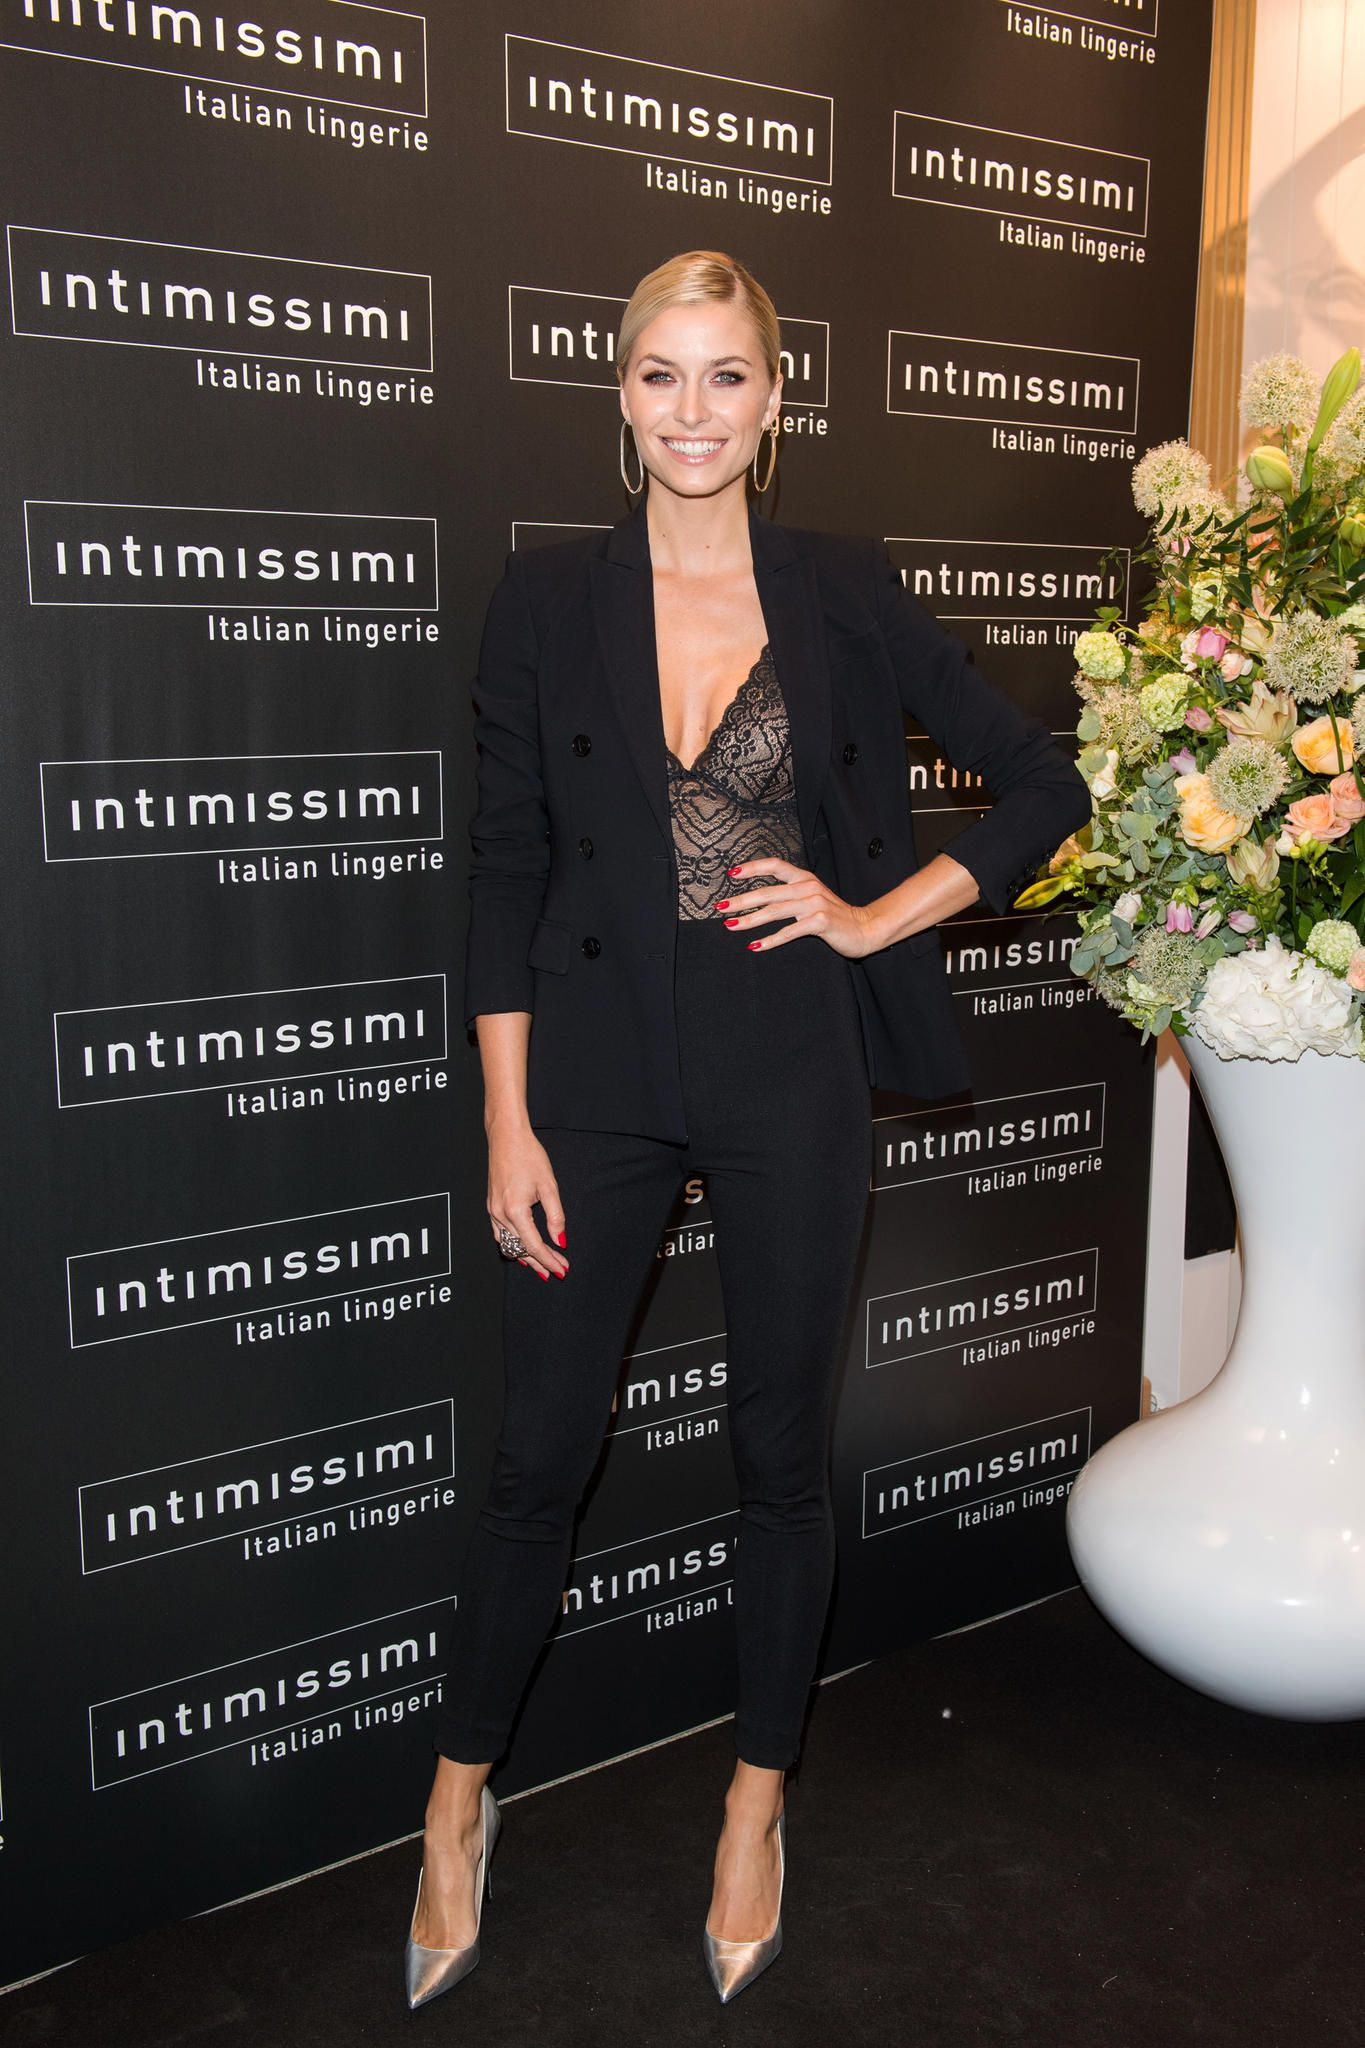 Photo of Lena Gercke: Pictures of her own fashion looks